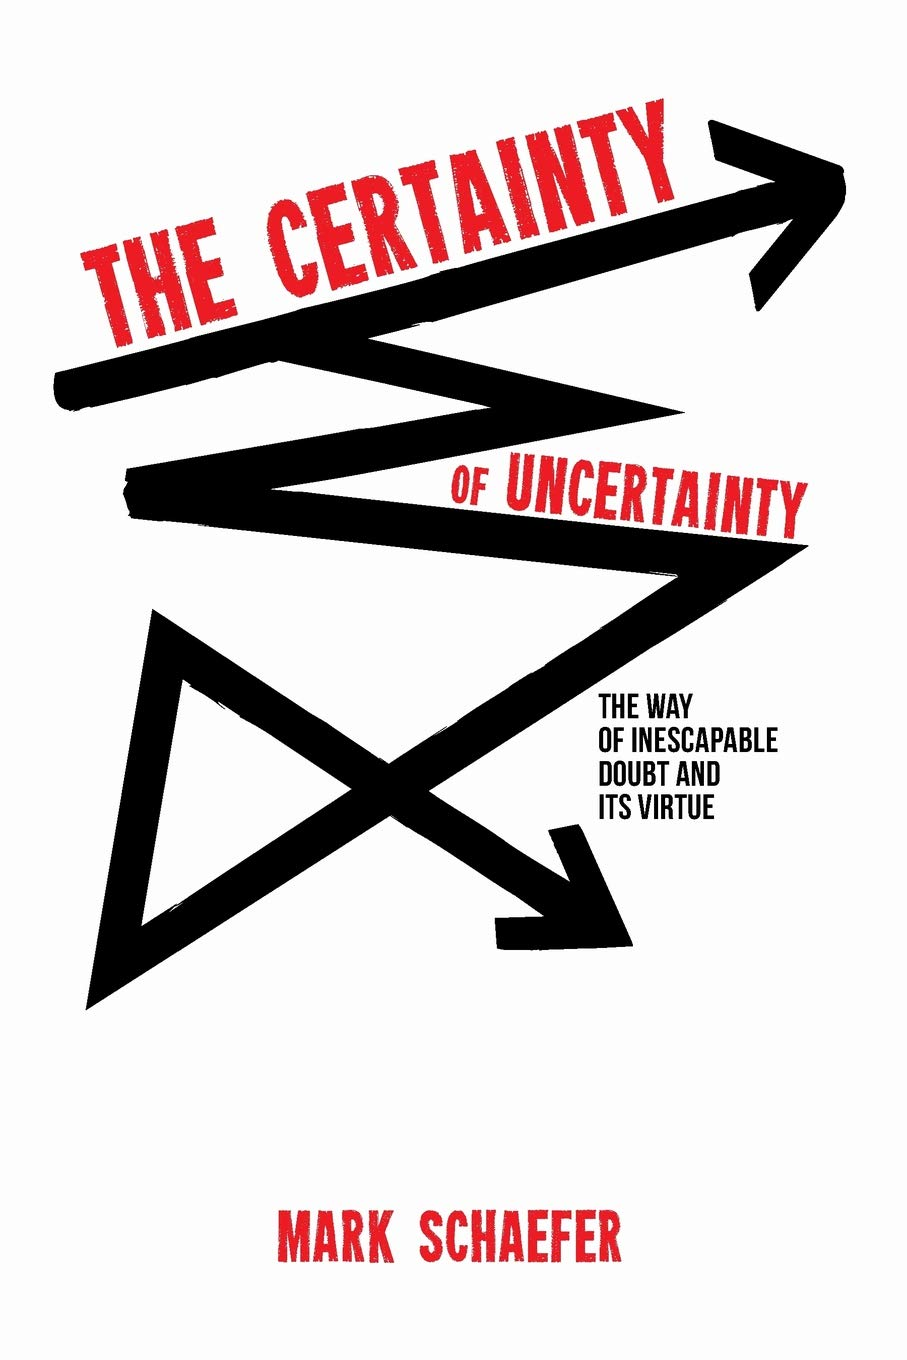 Cover for the book, The Uncertainty of Certainty by Mark Schaefer.